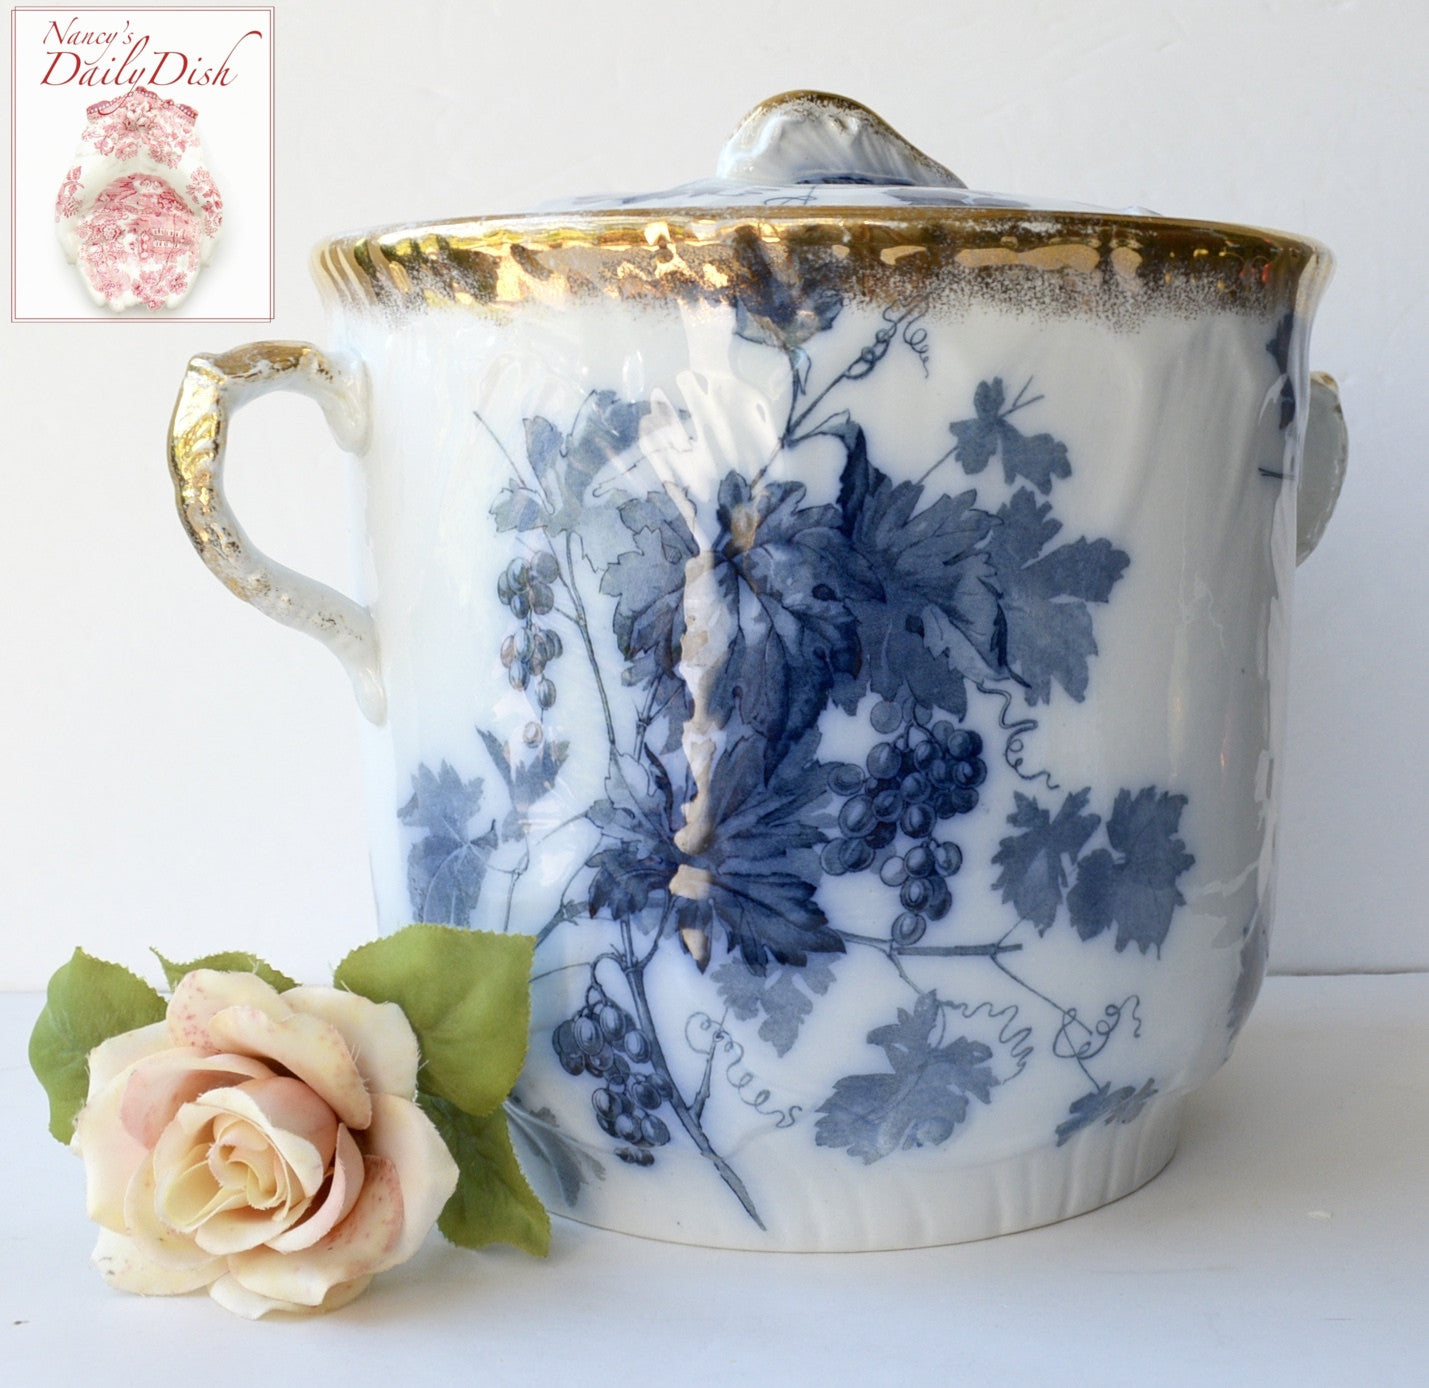 Antique Victorian Staffordshire Aesthetic Flow Blue Transferware Dual  Handled Floral Planter  Urn   Waste Bucket Slop Pail Lustre Gold Finish. Antique Staffordshire Slop Pail Teal Transferware Dual Handled 3